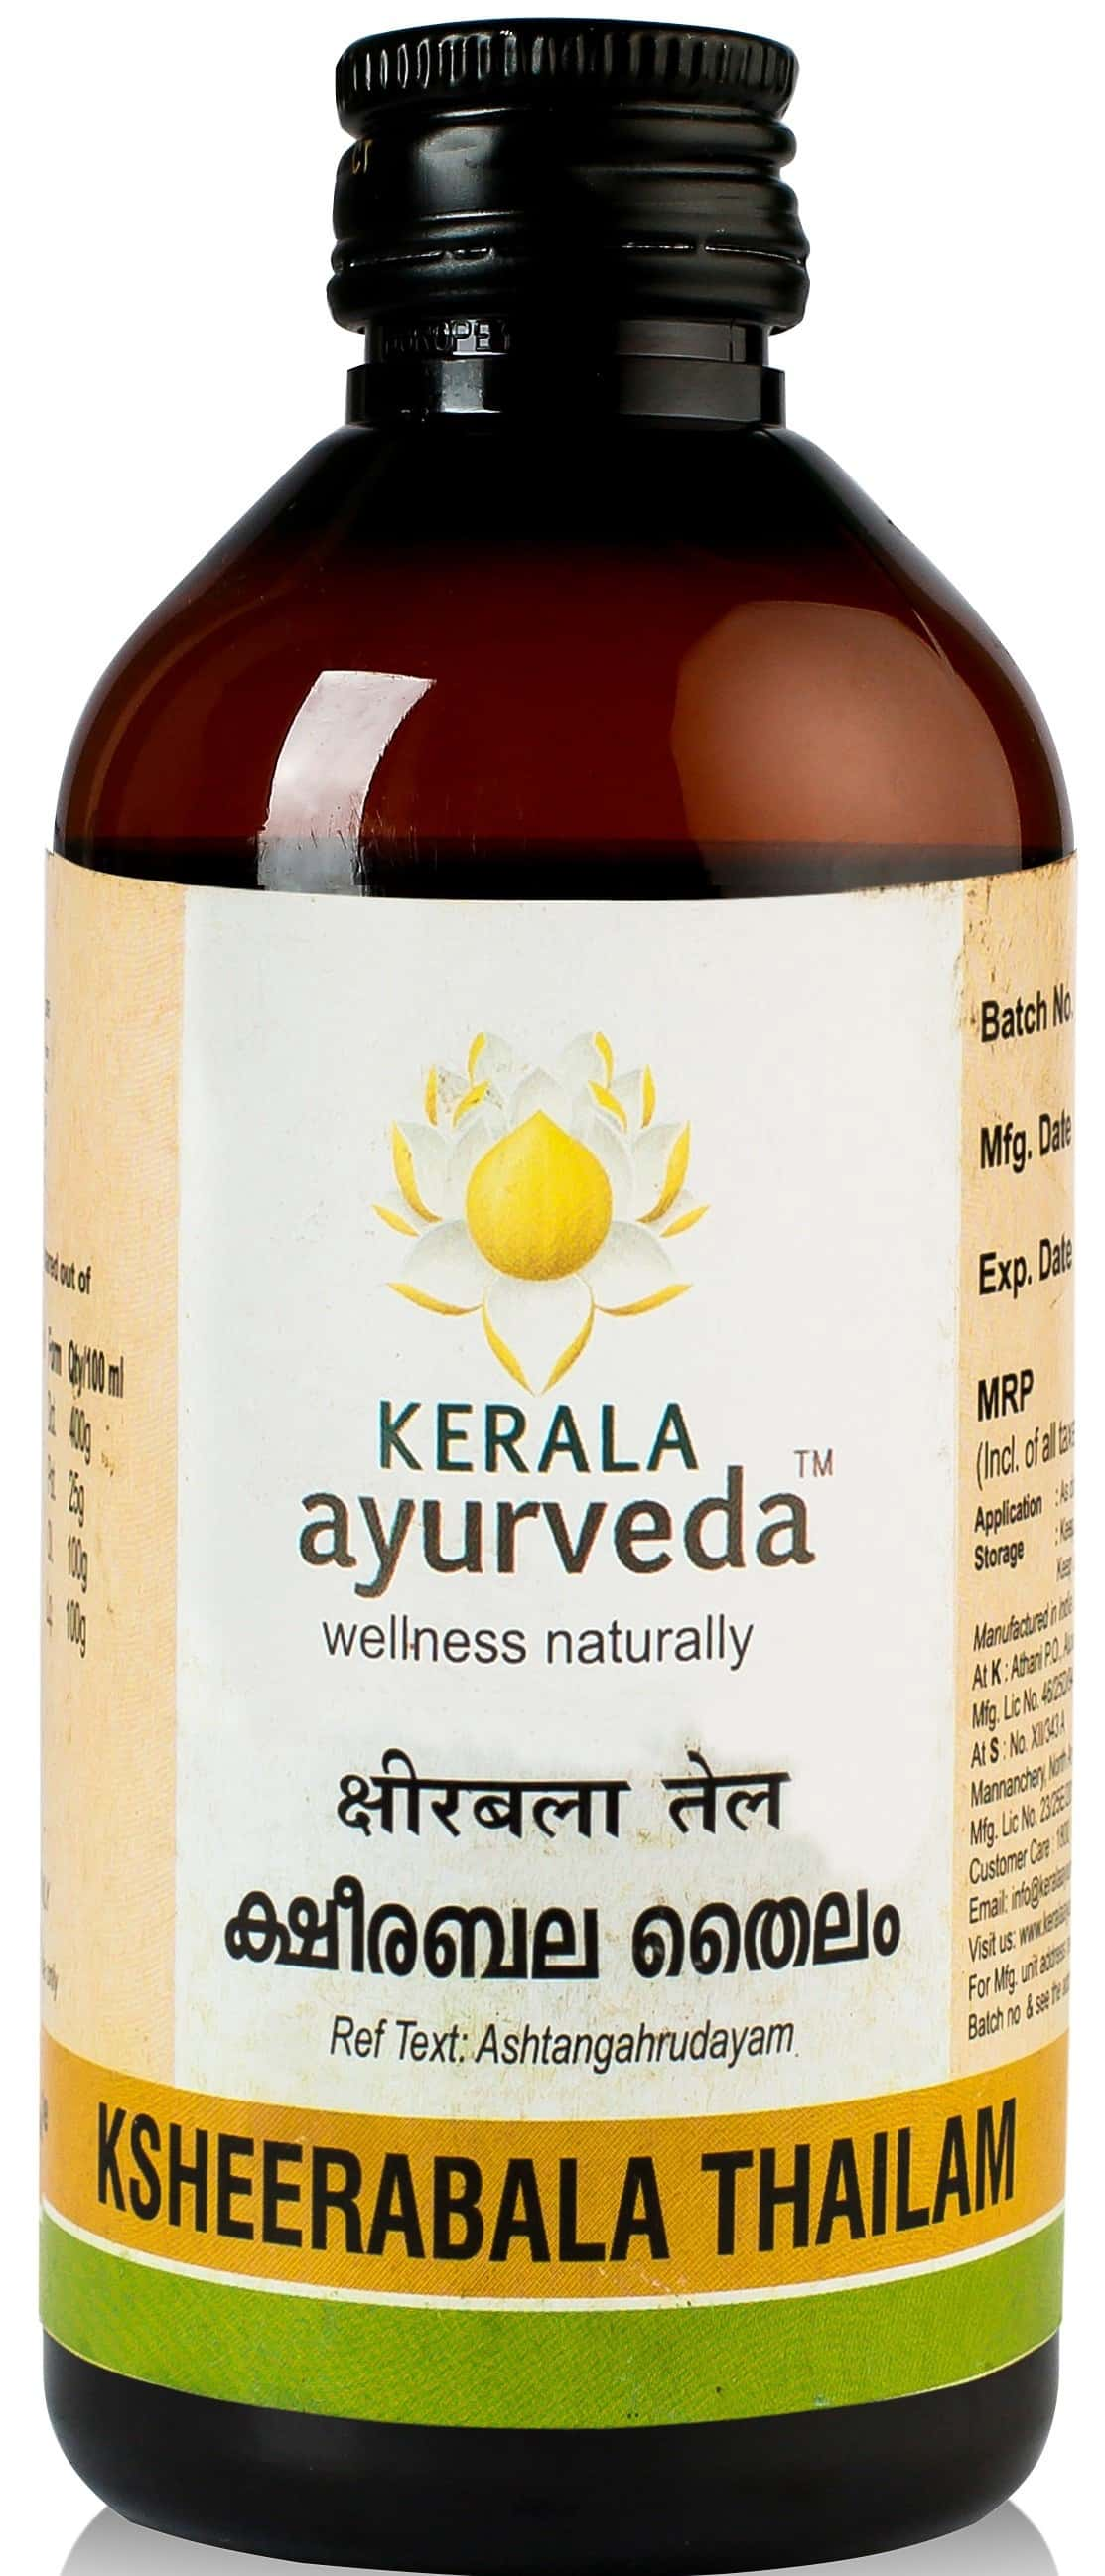 Kerala Ayurveda Ksheerabala Thailam - 200 Ml - Pack Of 2